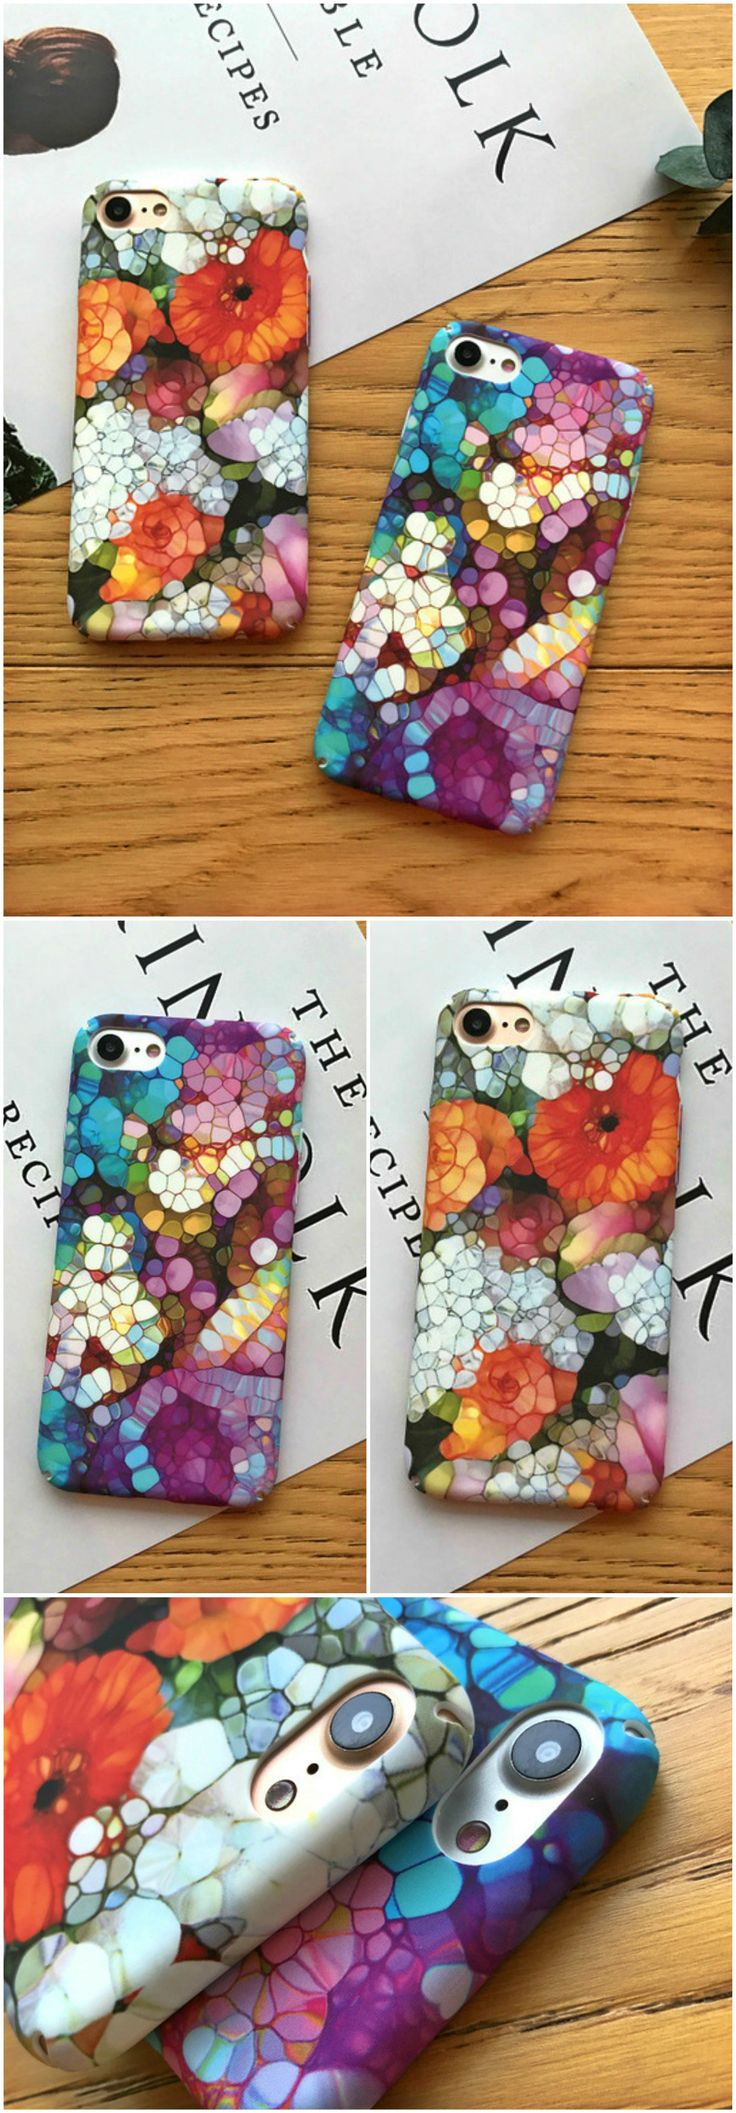 Exquisite Stone Art iPhone Case - Beautiful iPhone Case Exquisite Stone Art - Available for iPhone 6, iPhone 6 Plus, iPhone 8, iPhone 8 plus, iPhone 7, iPhone 7 Plus and iPhone X.